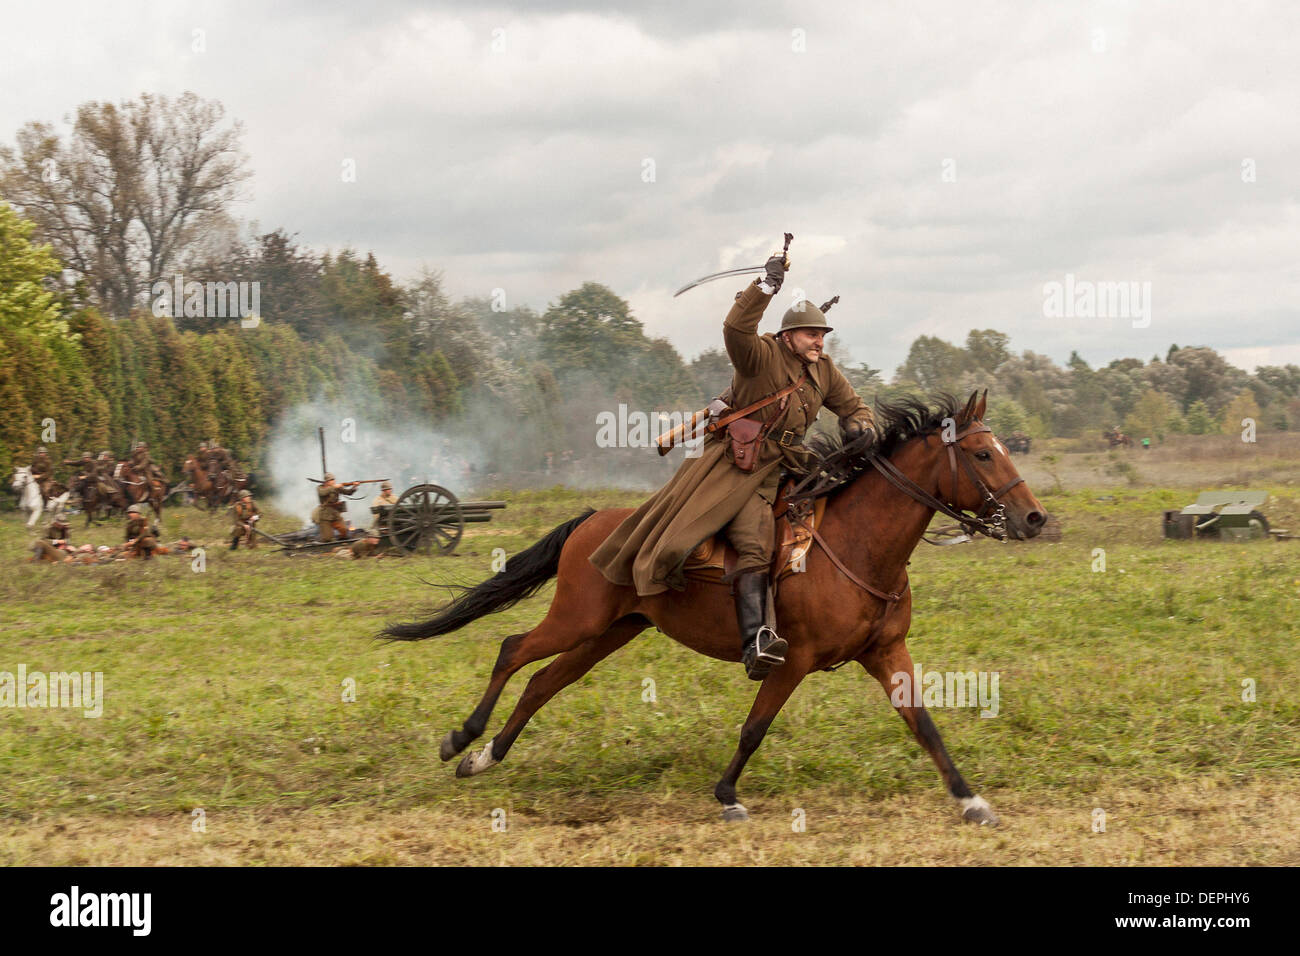 Lomianki, Poland. 22nd Sep, 2013. 22nd September, 2013. Polish cavalry ride their horses during Battle at Lomianki - historical reenactment, Poland Credit:  Travelfile/Alamy Live News - Stock Image